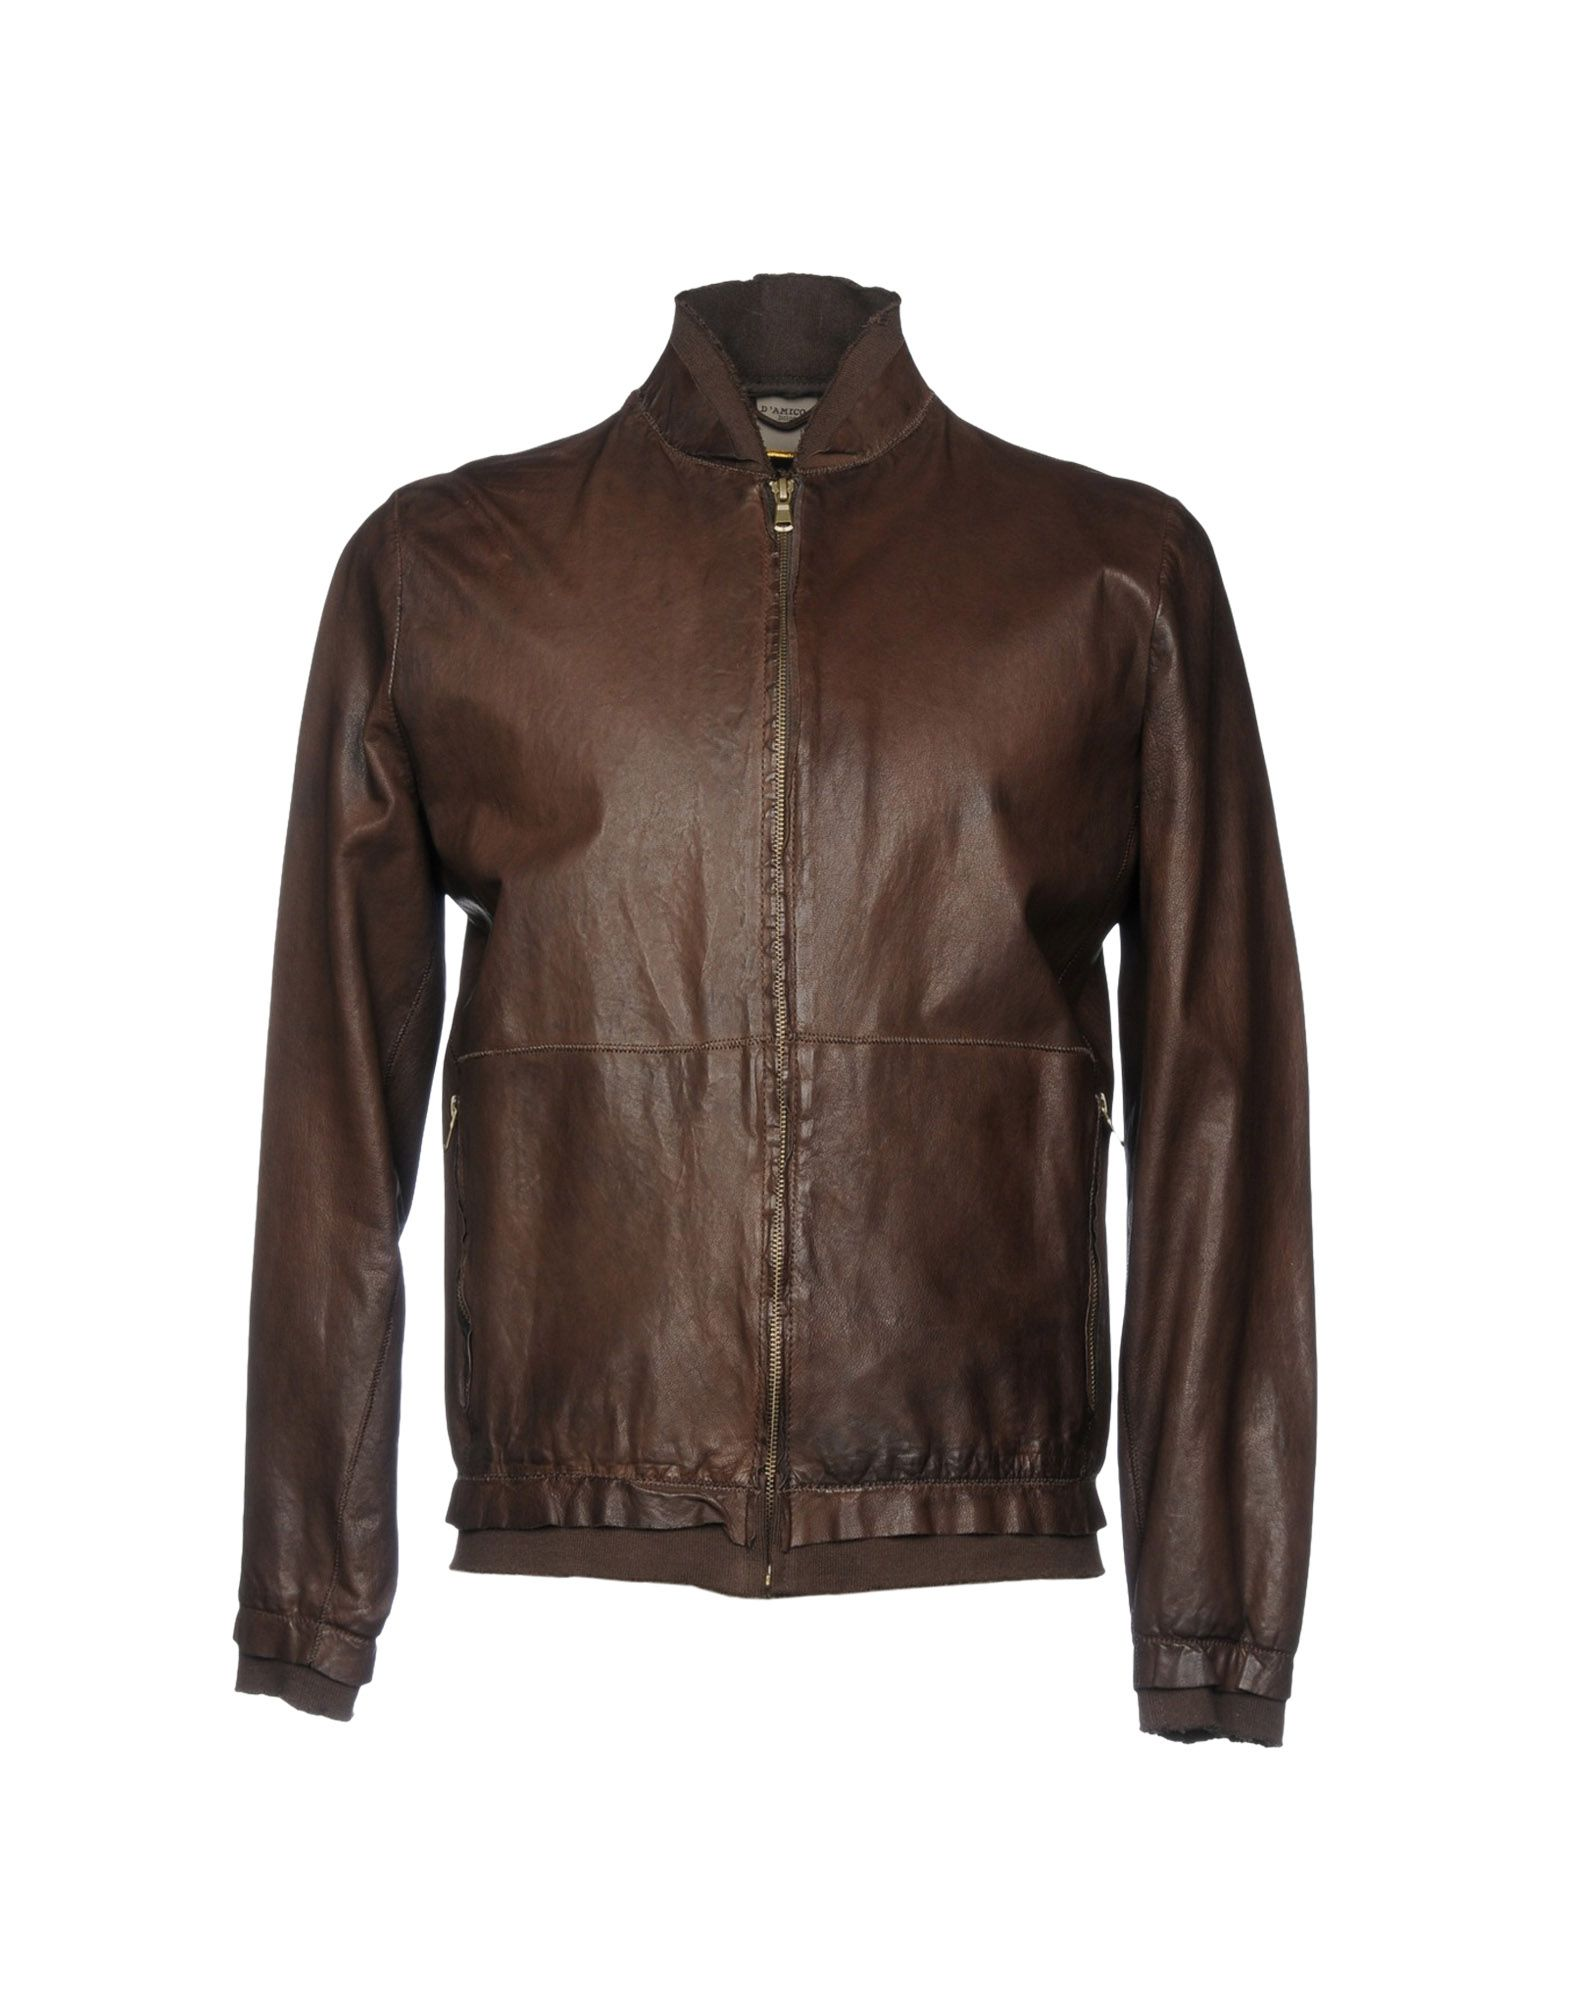 D'AMICO Jackets in Cocoa